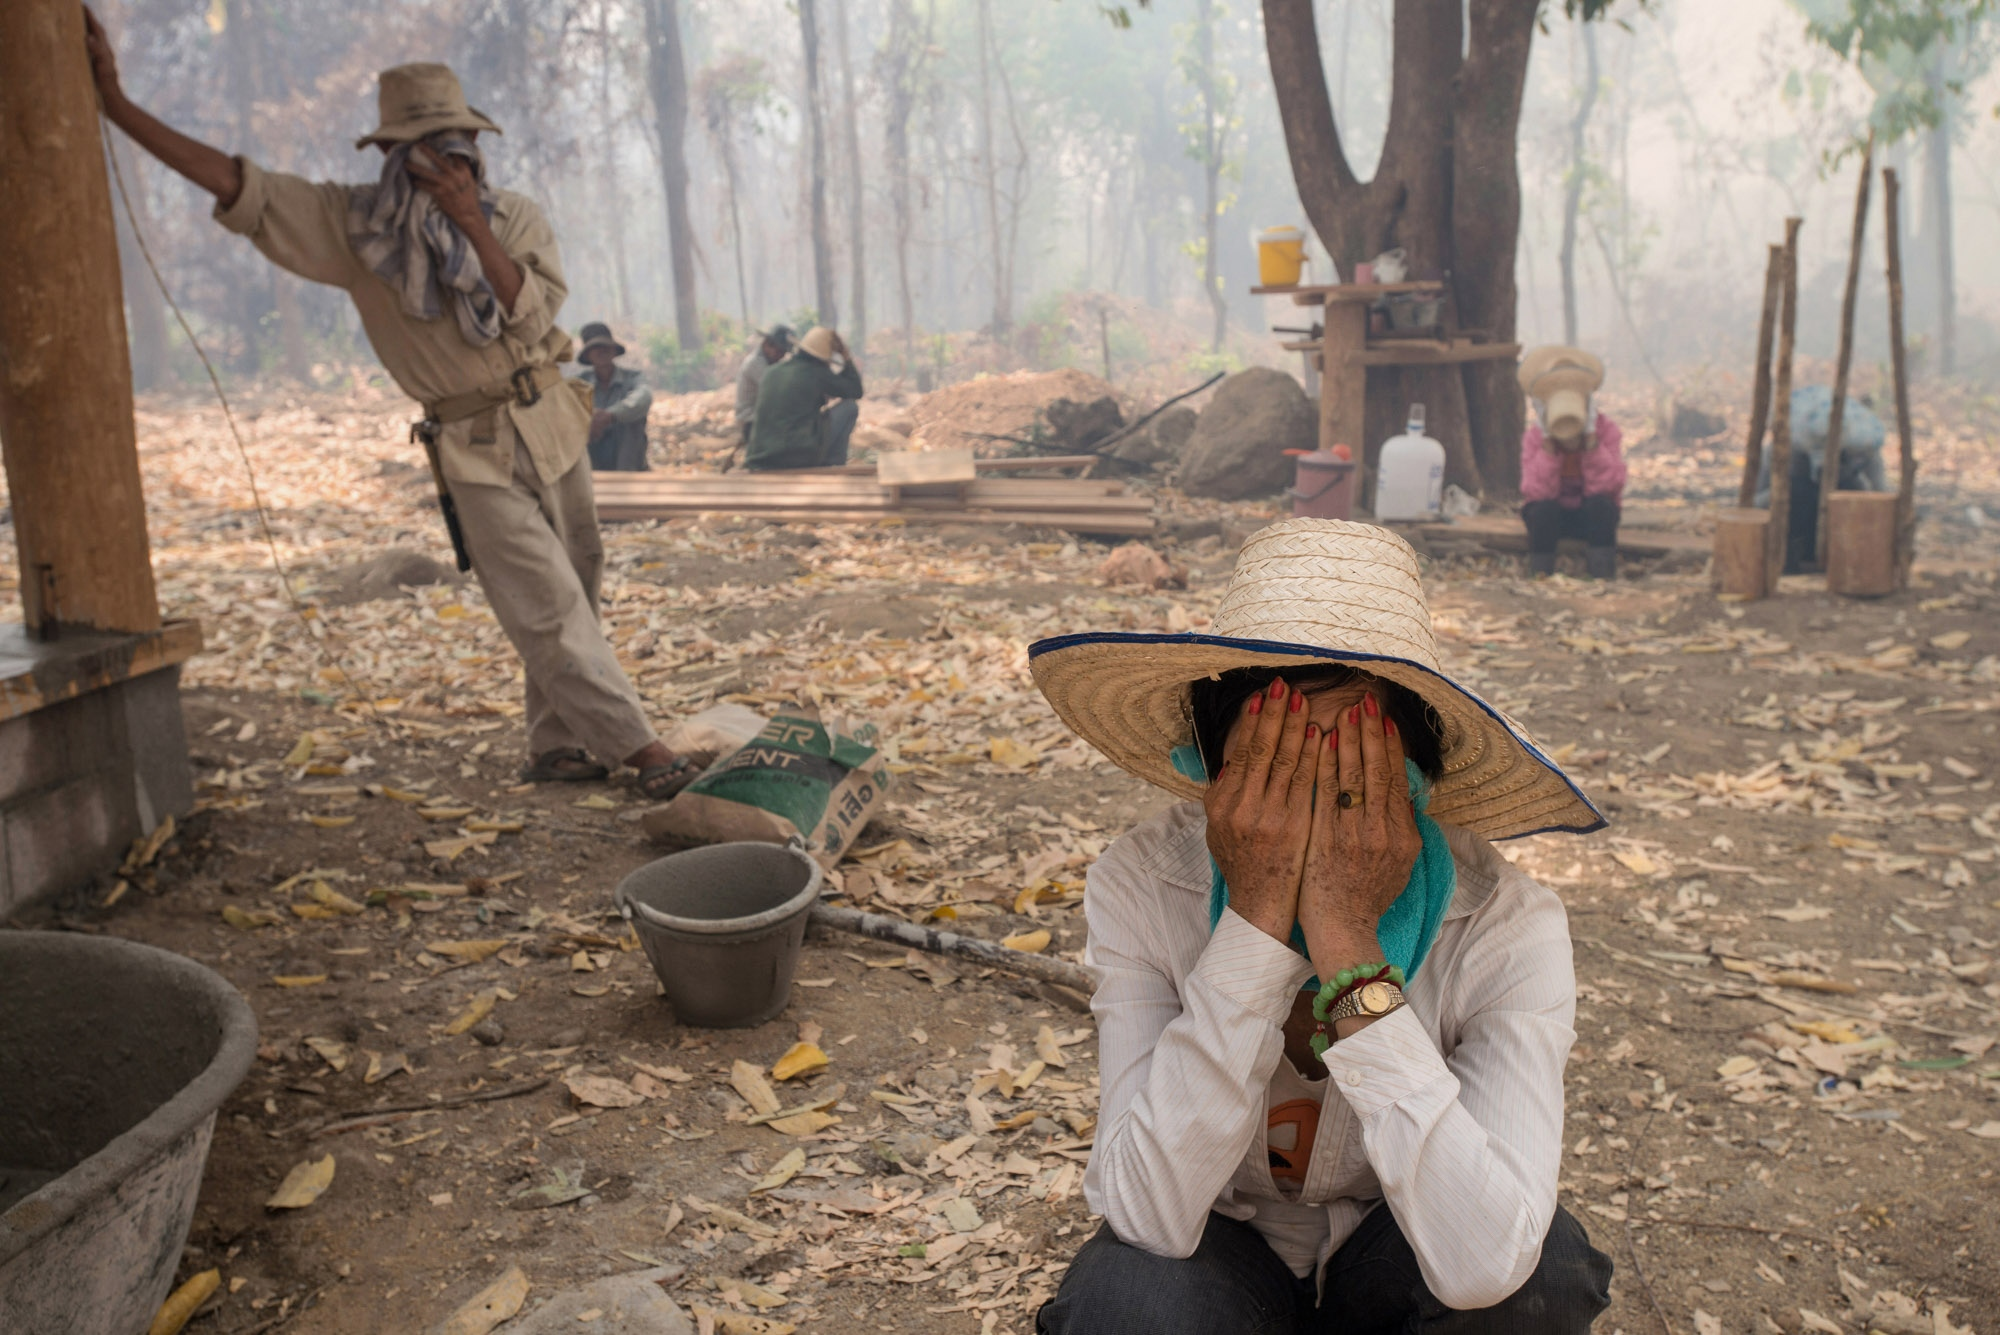 Wildfire occurs during the day time in a place outside of the city. The nearby areas where labors working are covered in haze.